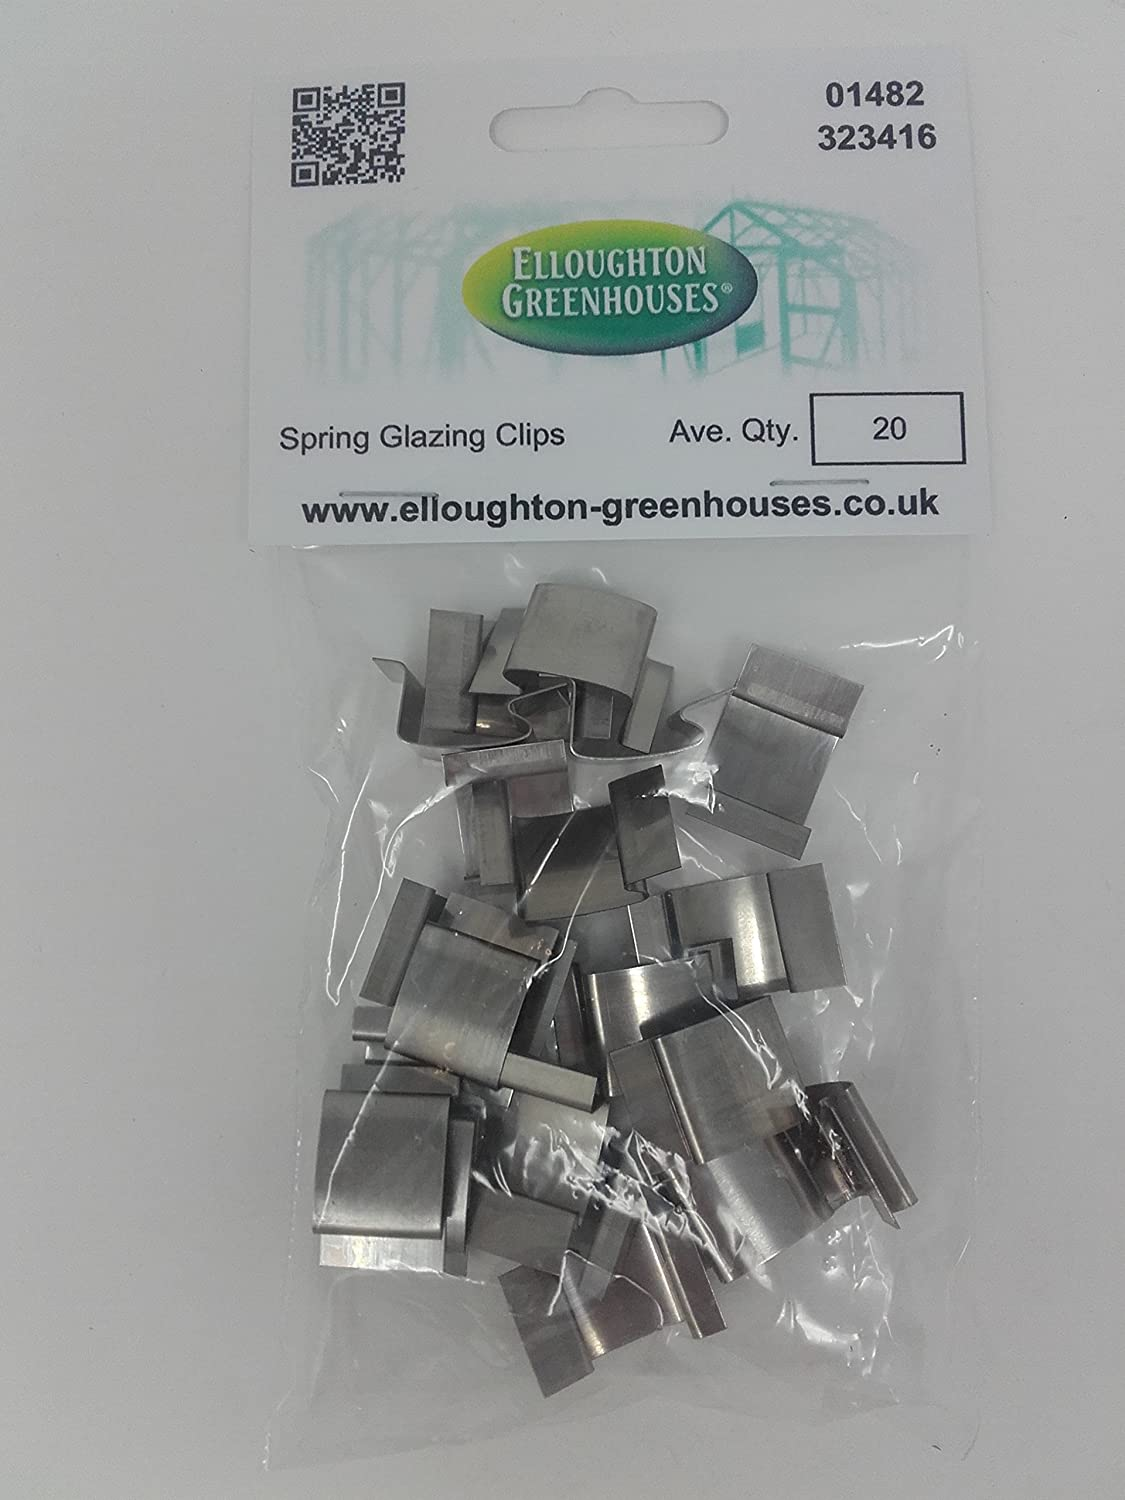 20 Stainless Steel Spring Greenhouse Glazing Clips Genuine Elite Greenhouses parts Elloughton Greenhouses® 20 G Clips